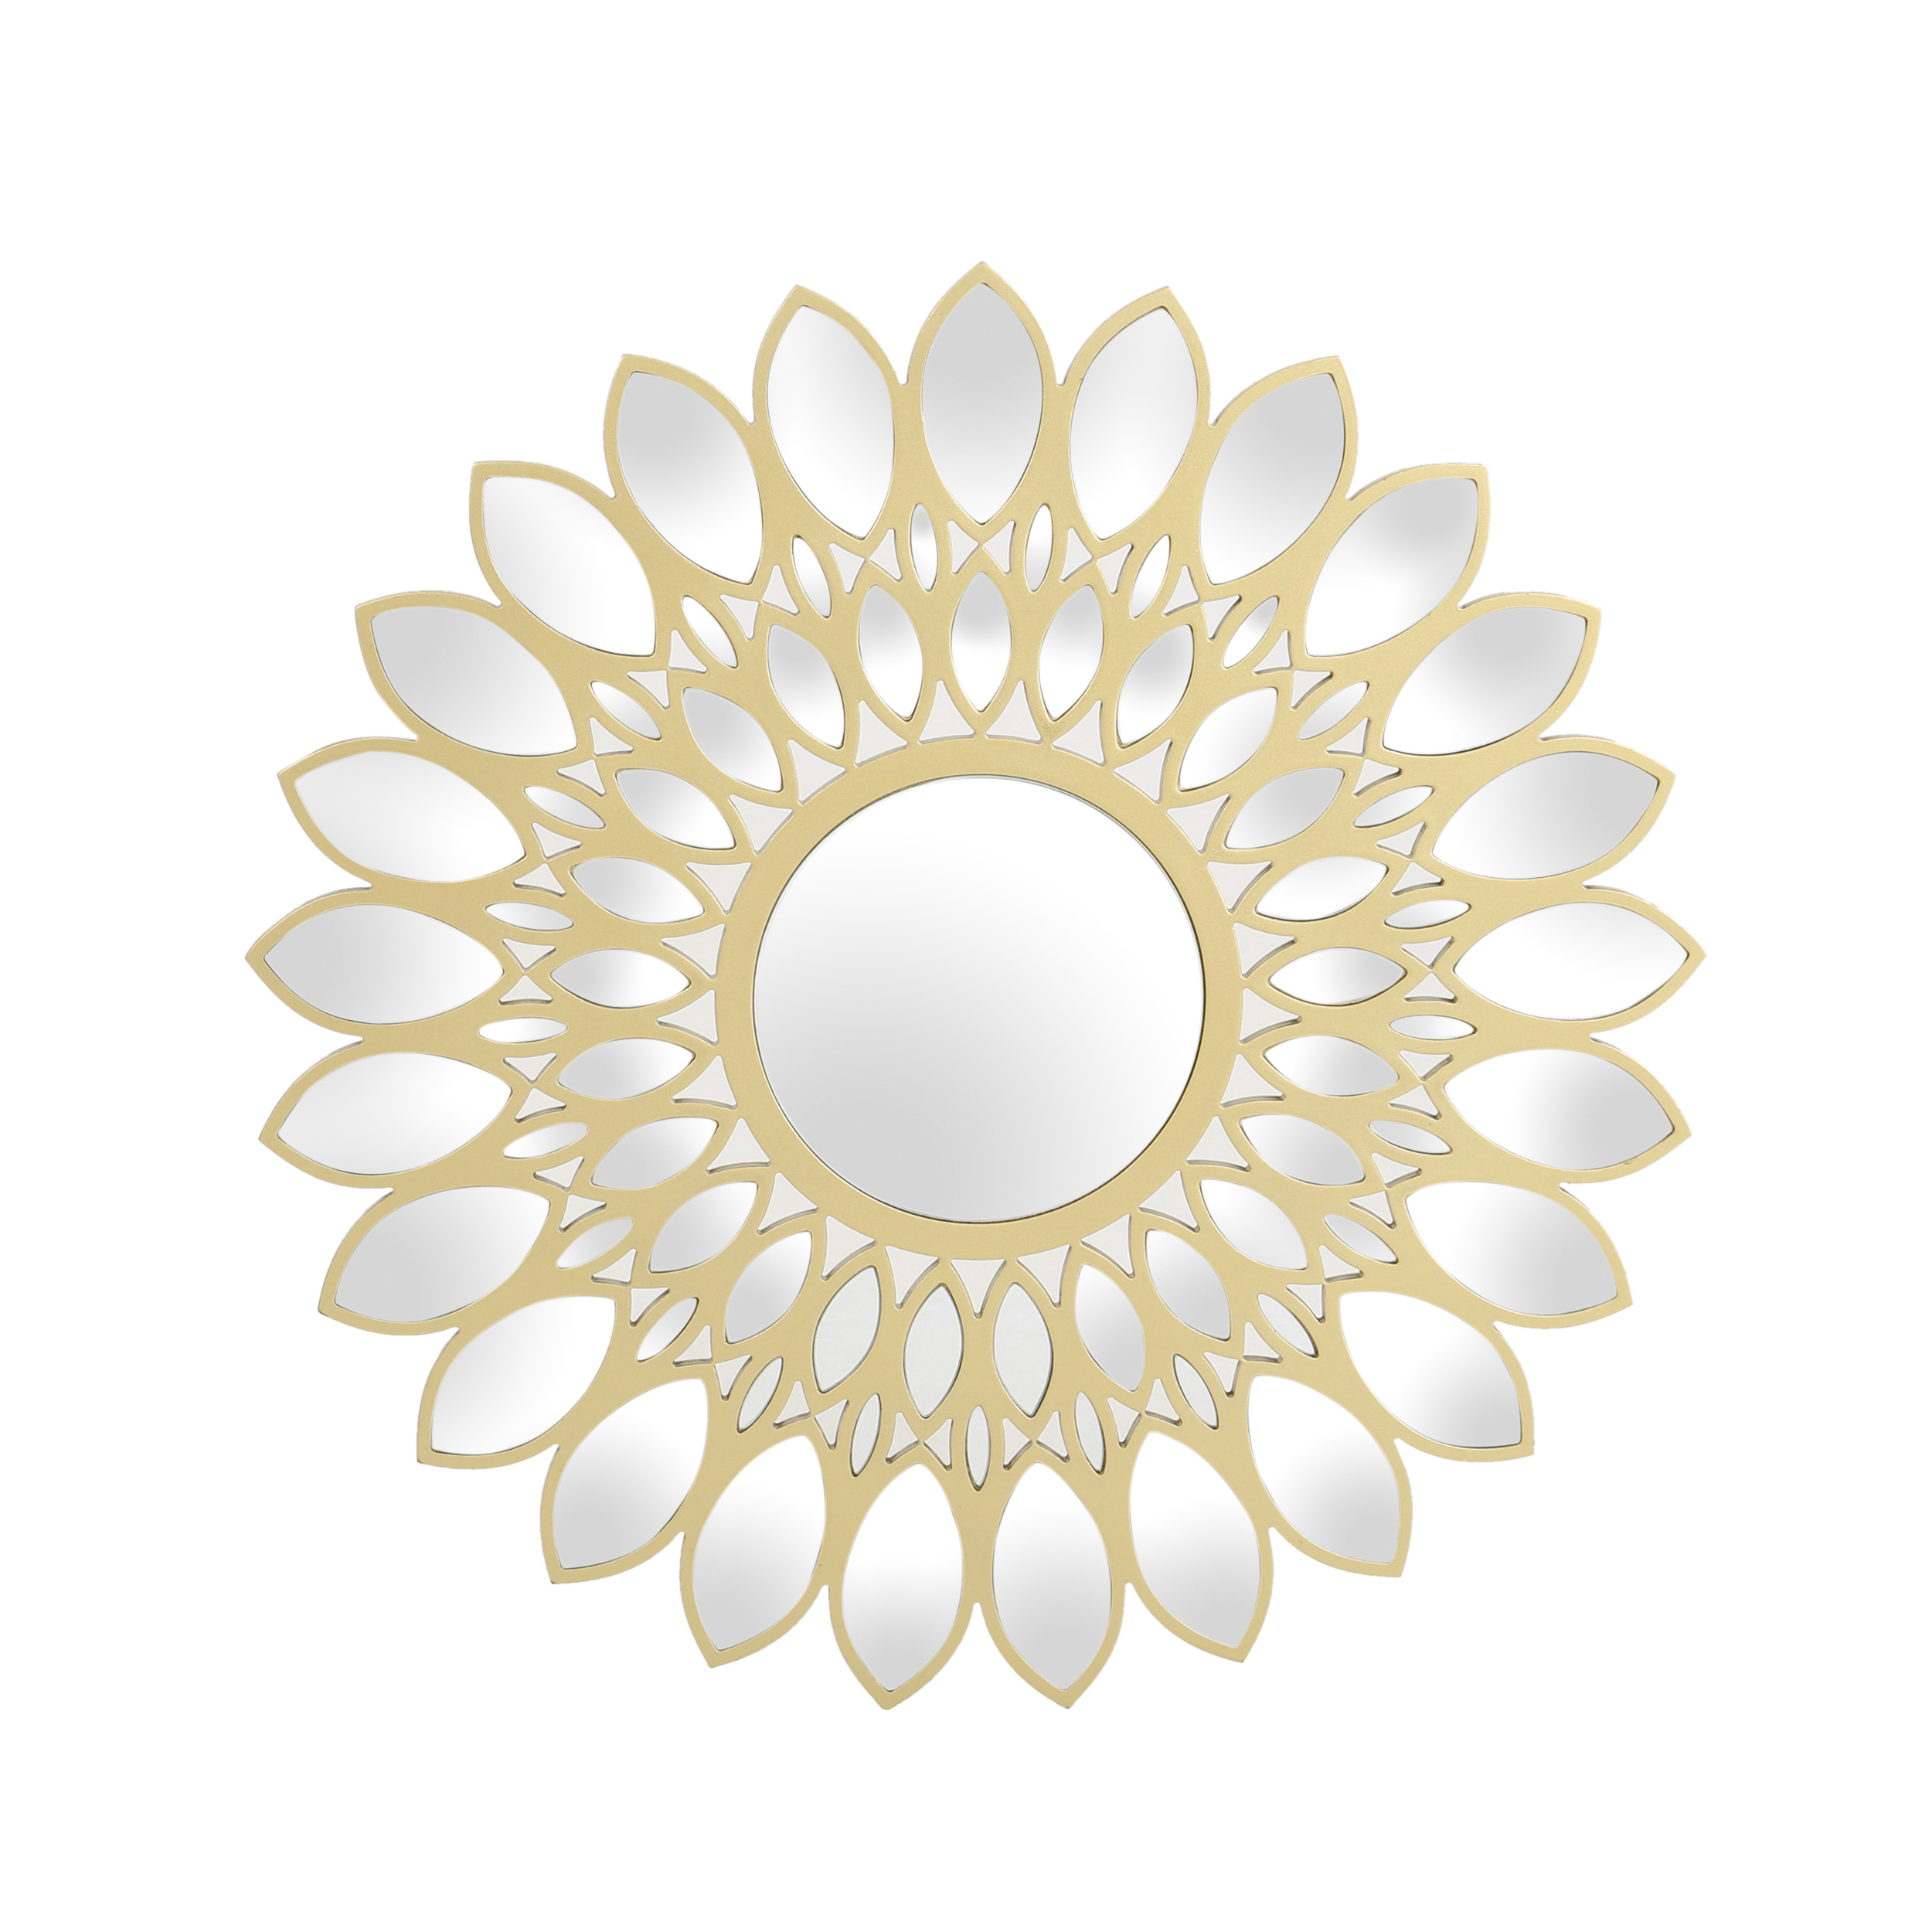 Best And Newest Danae Glam Flower Wall Mirror, Gold Finish Inside Flower Wall Mirrors (View 5 of 20)